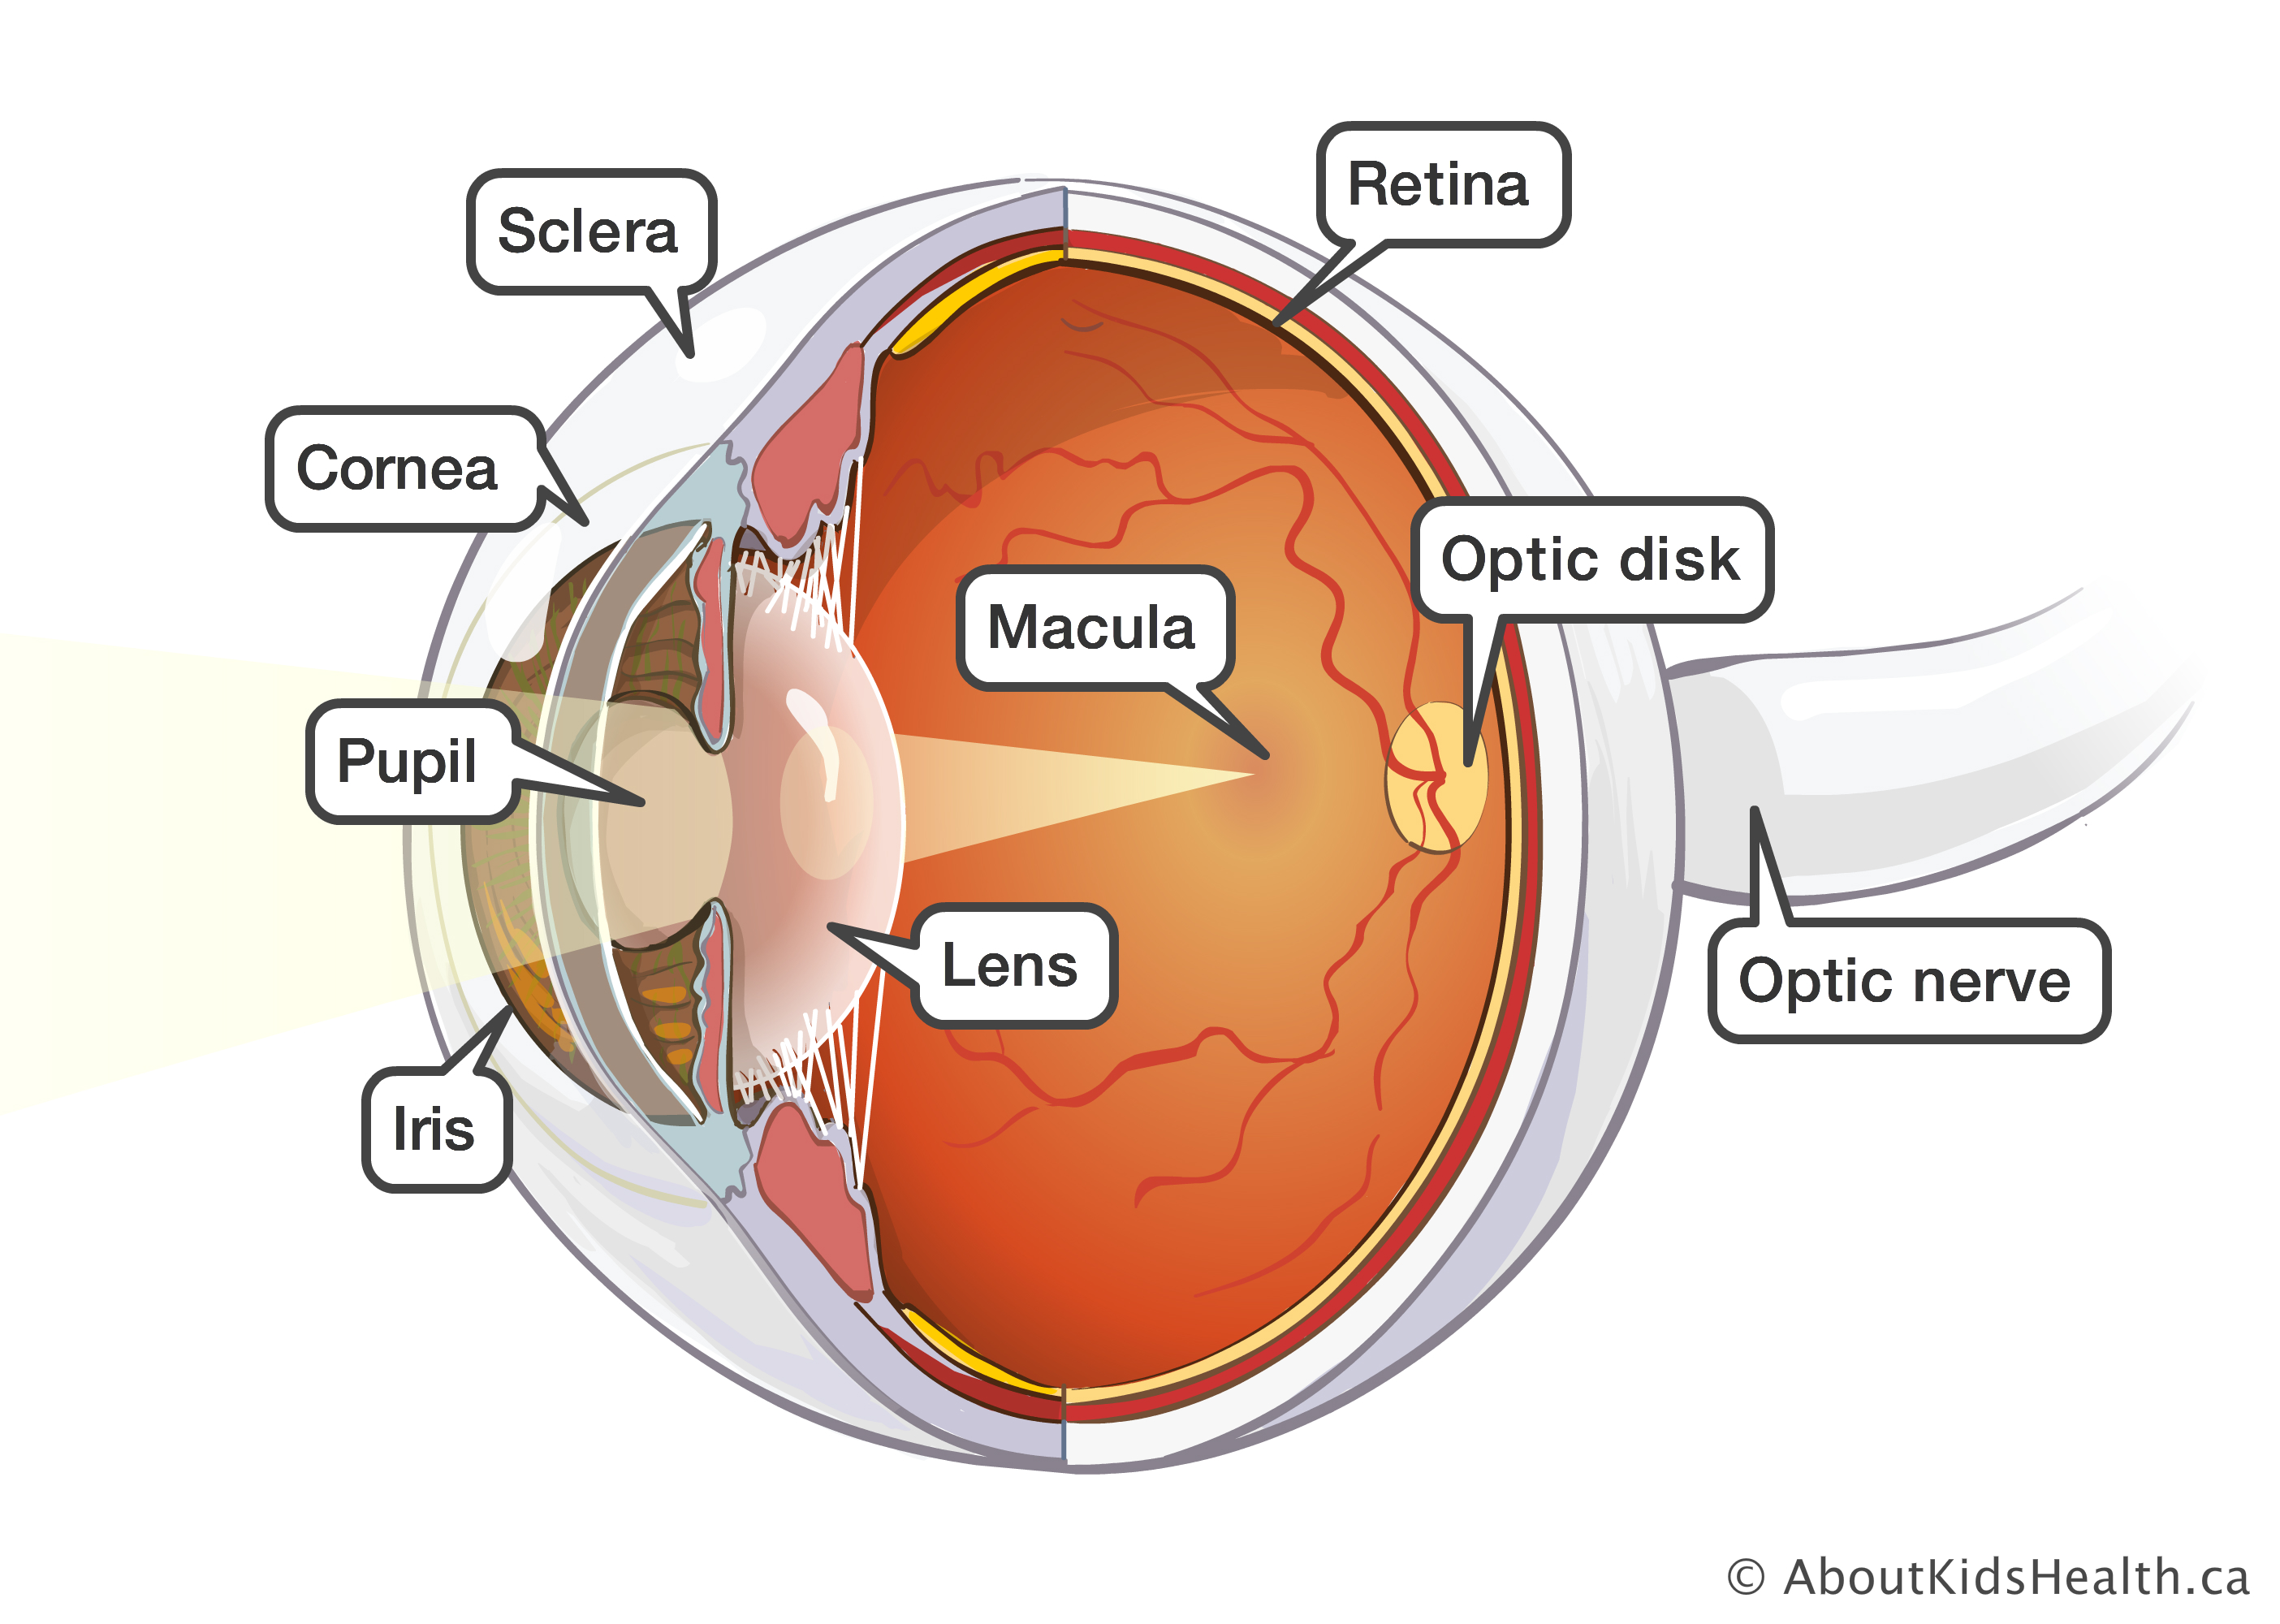 eye anatomy and function diagram of parts of the eye diagram of parts of the eye [ 2808 x 2000 Pixel ]